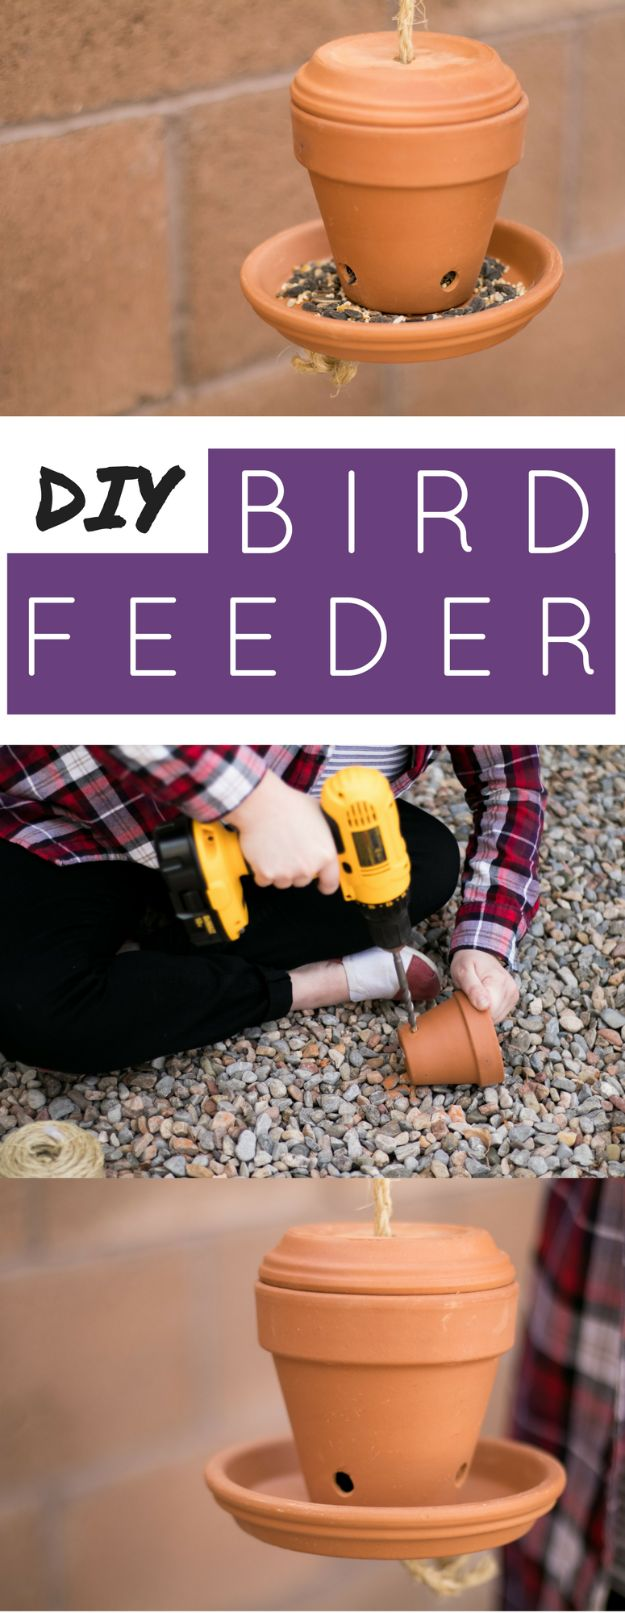 DIY Bird Feeders - DIY Bird Feeder For Songbirds - Easy Do It Yourself Homemade Bird Feeder Ideas from Mason Jar, Wooden, Wine Bottle, Milk Jug, Plastic, Dollar Store Supplies - Squirrel Proof, Unique and Creative Tutorials That Make Cool DIY Gifts #diyideas #birds